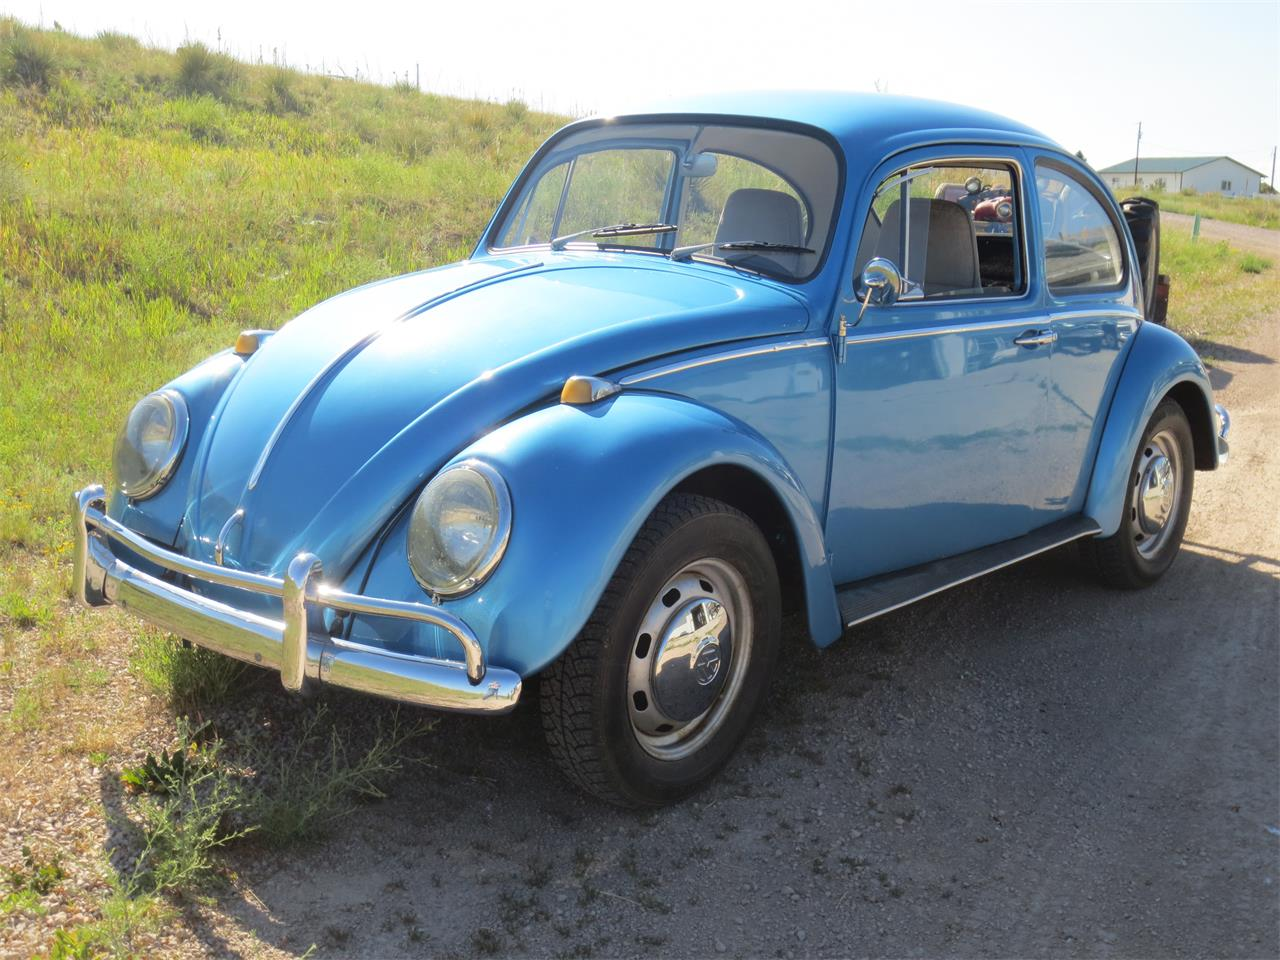 Vw For Sale >> 1964 Volkswagen Beetle For Sale Classiccars Com Cc 1015299